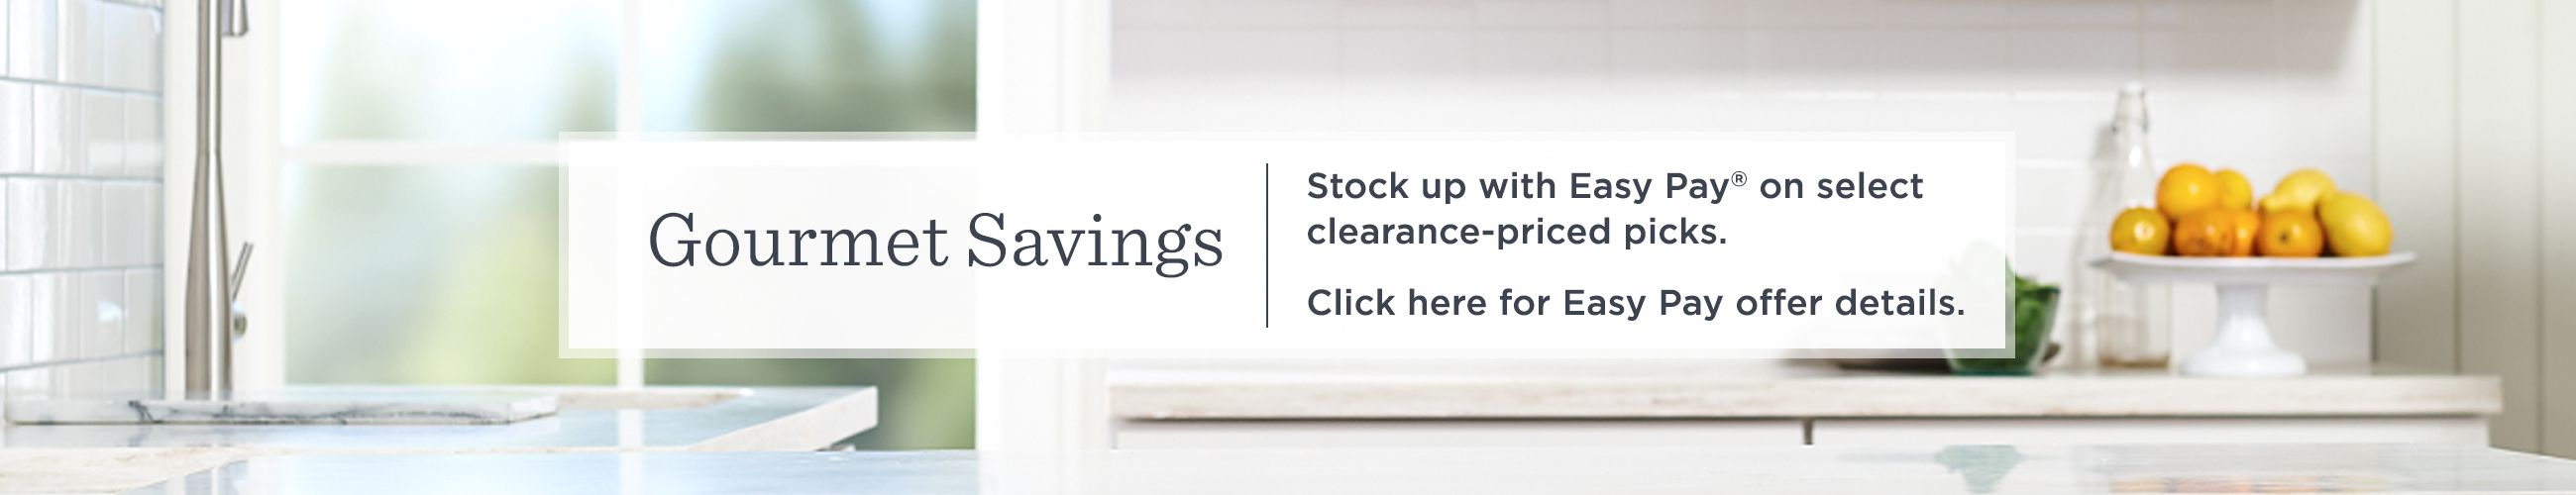 Superbe Click Gourmet Savings Stock Up With Easy Pay® On Select Clearance Priced  Picks. Click